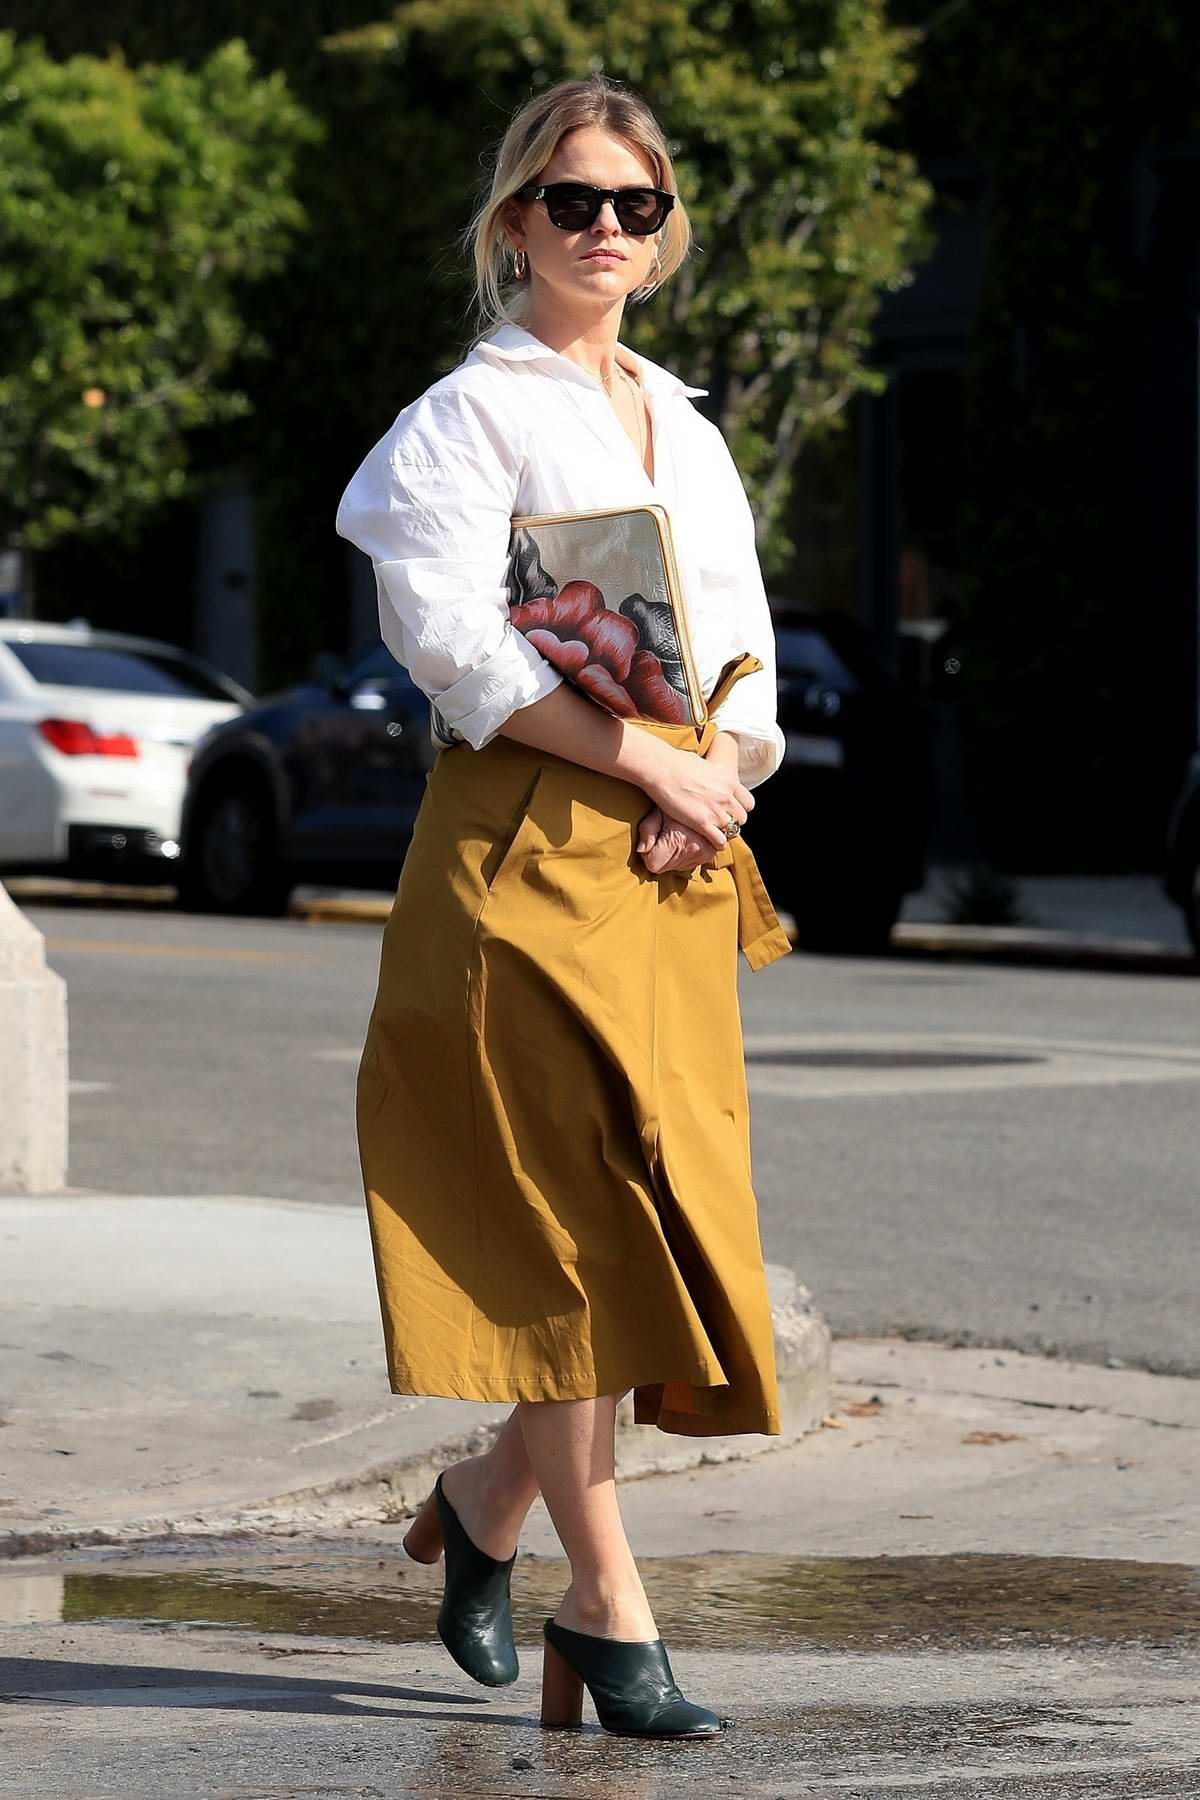 Alice Eve looks fashionably chic in a white shirt and mustard yellow skirt as she steps out for a meeting in West Hollywood, Los Angeles